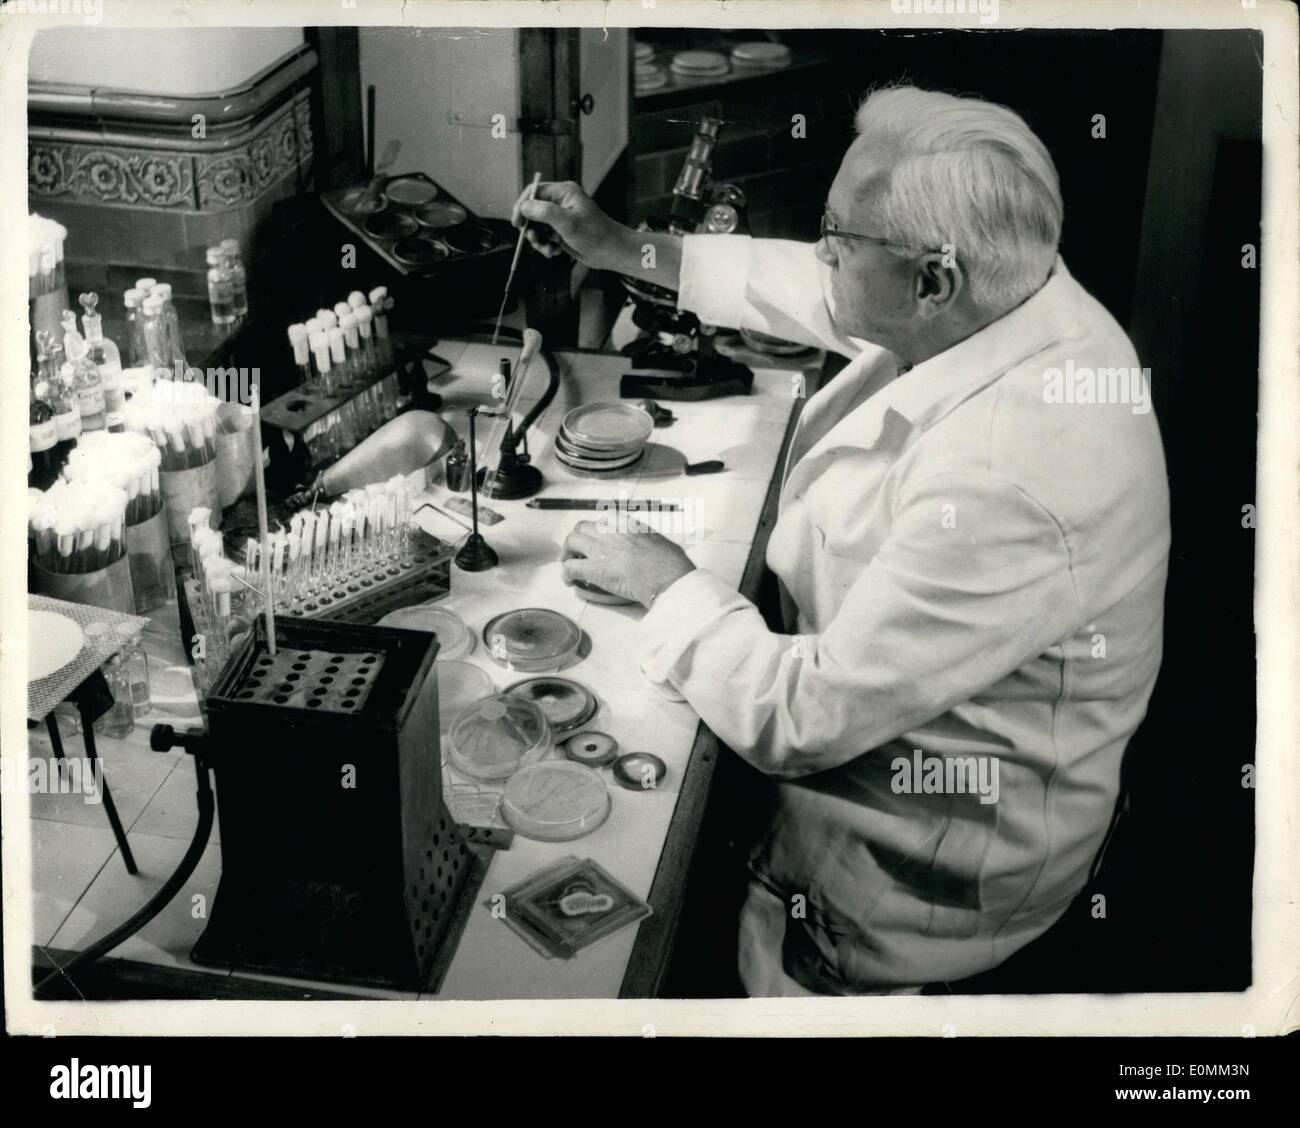 Nov. 11, 1955 - Penicillin Pioneer Dies - Sir Alexander Fleming Has Sudden Heart Attack. Sir Alexander Fleming, - Stock Image